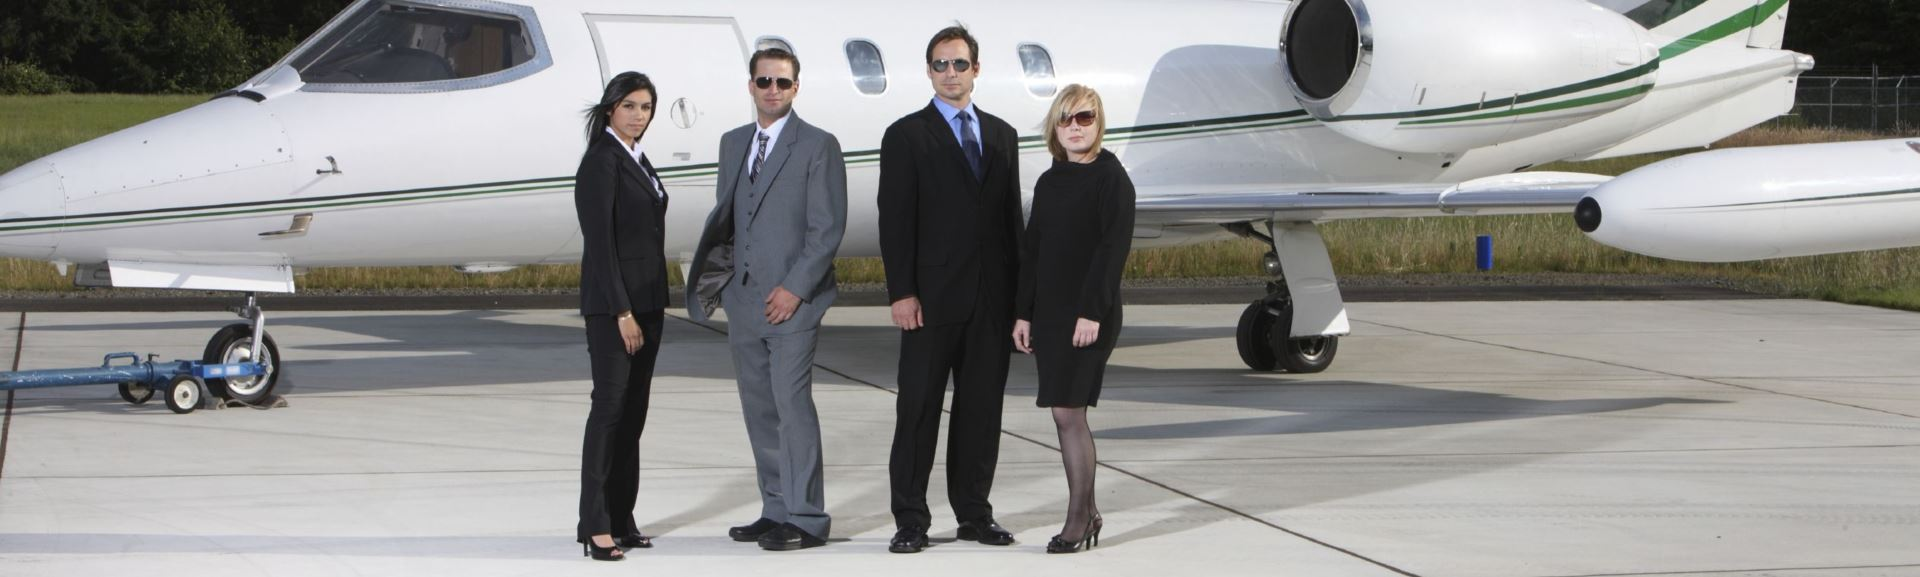 biz people boarding plane cropped.jpg